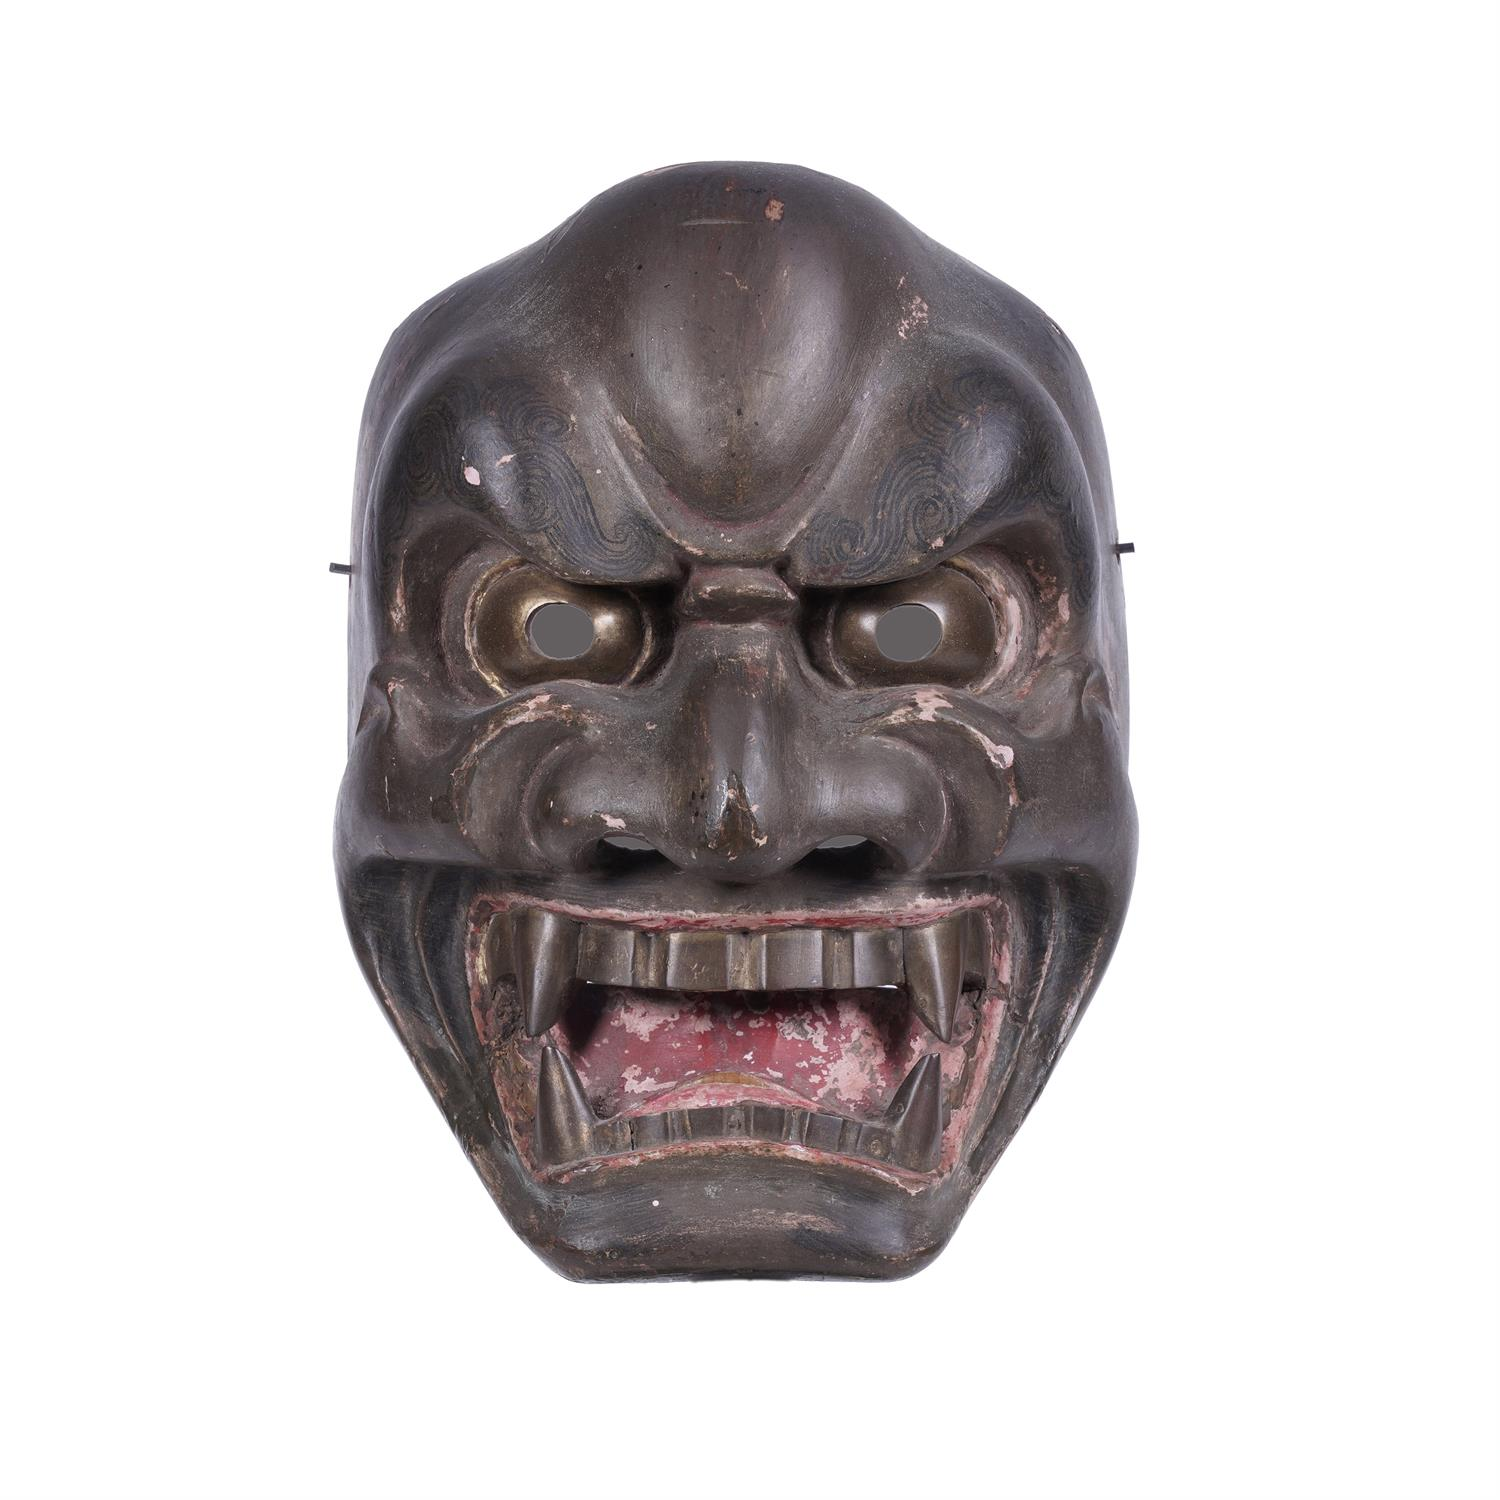 .A LACQUERED WOODEN MASK Japan, 19th century H: 21 cm - w: 15,5 cm Provenance: A curated selection - Image 3 of 4